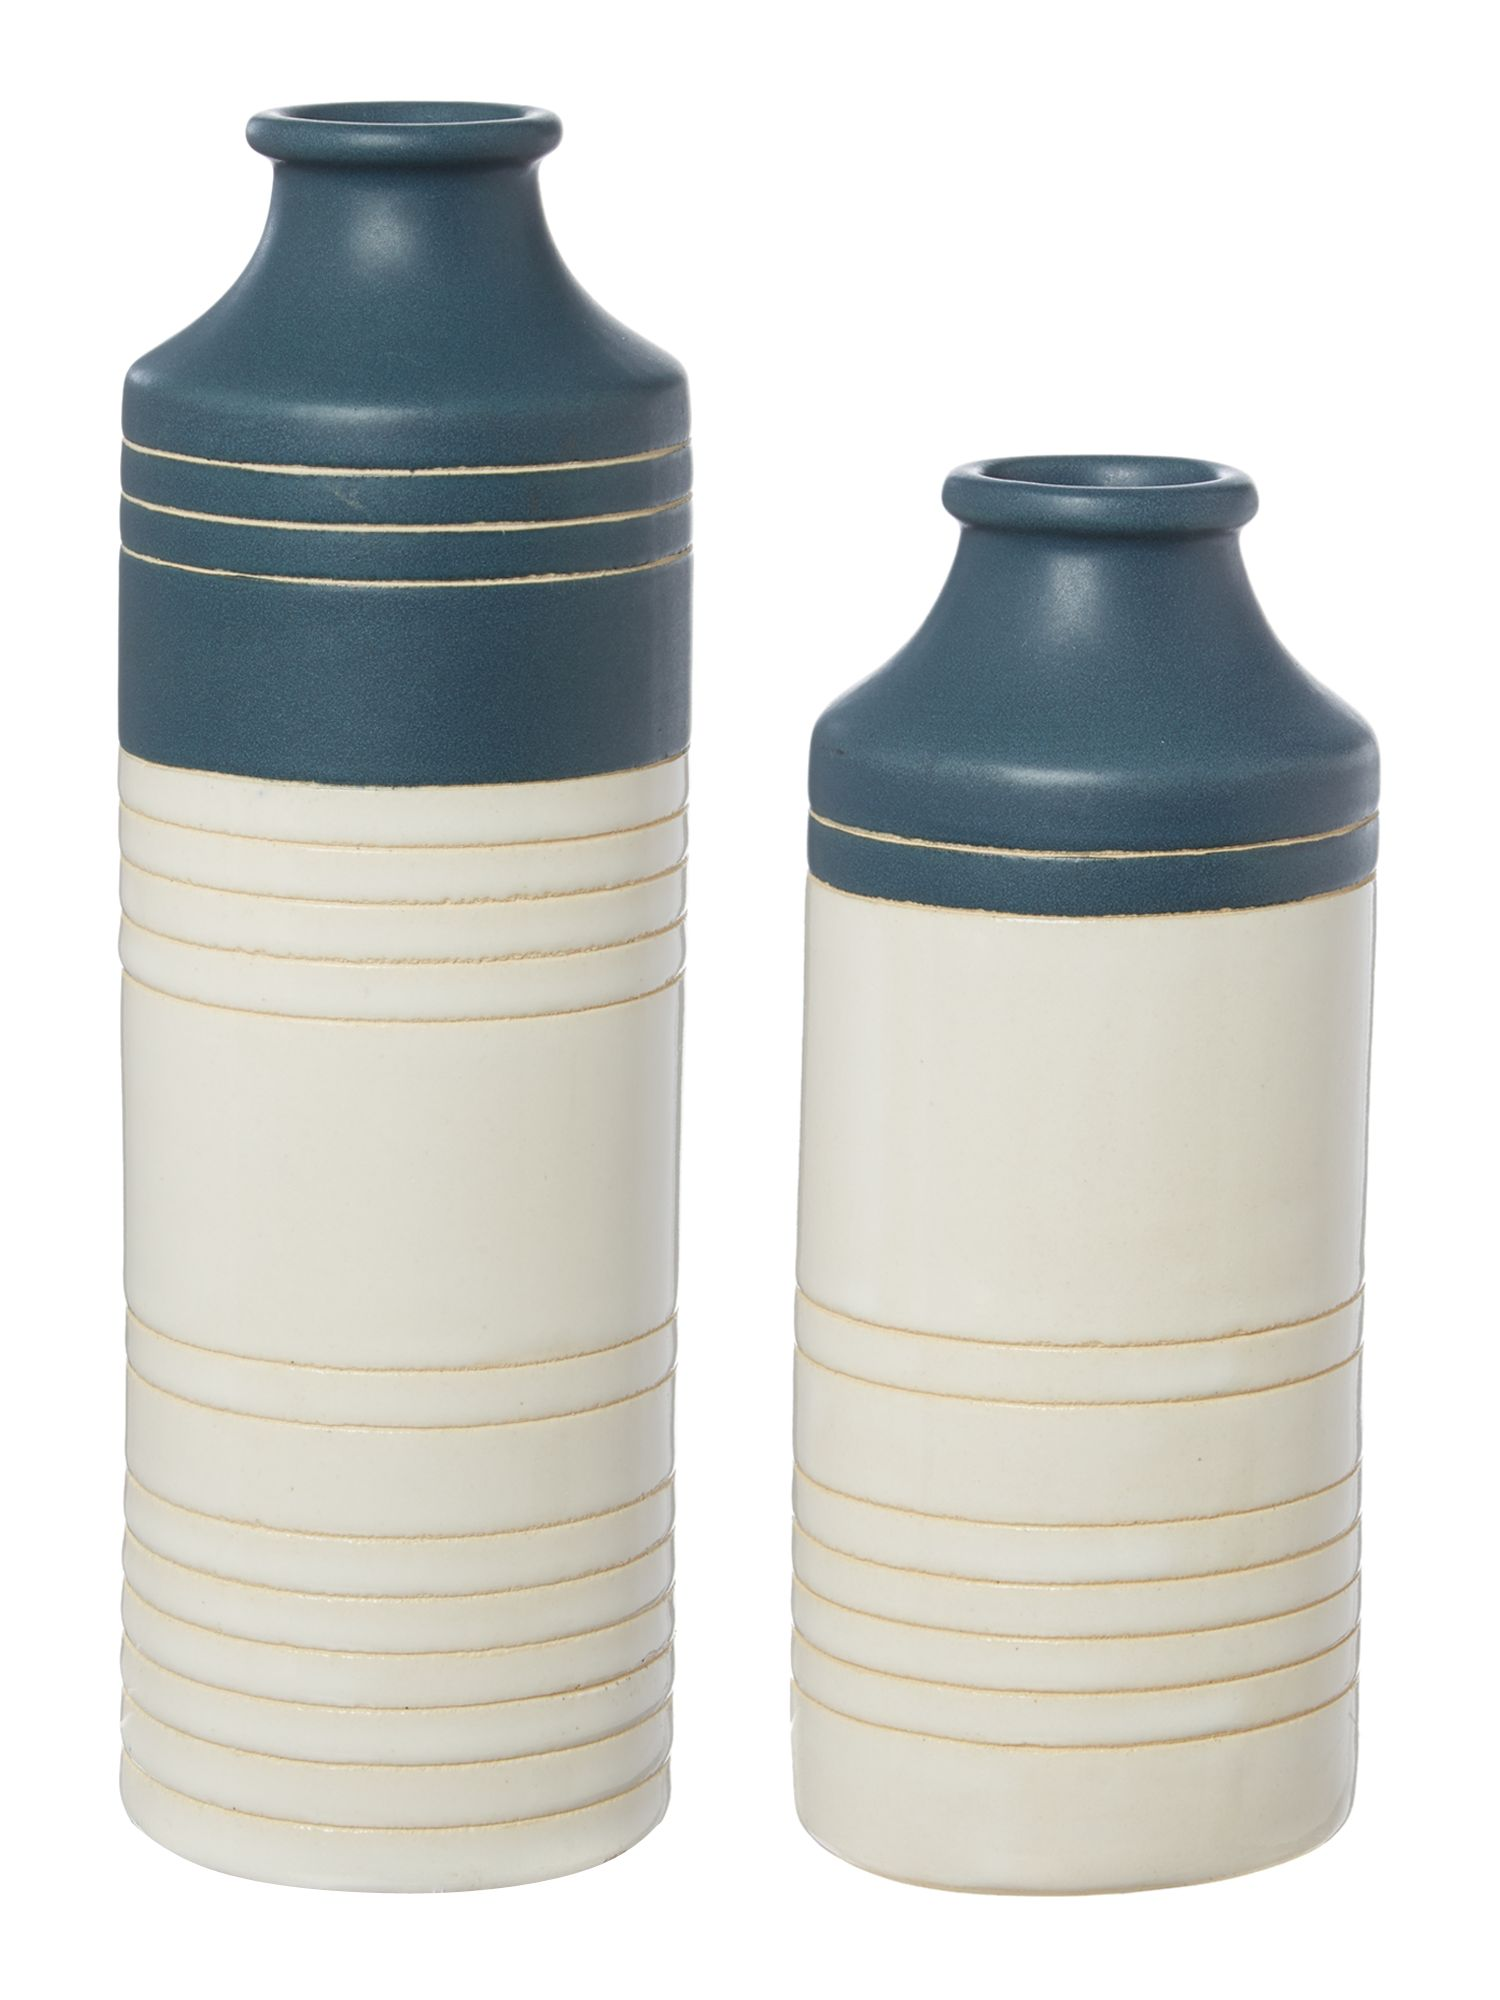 Stripe ceramic vase